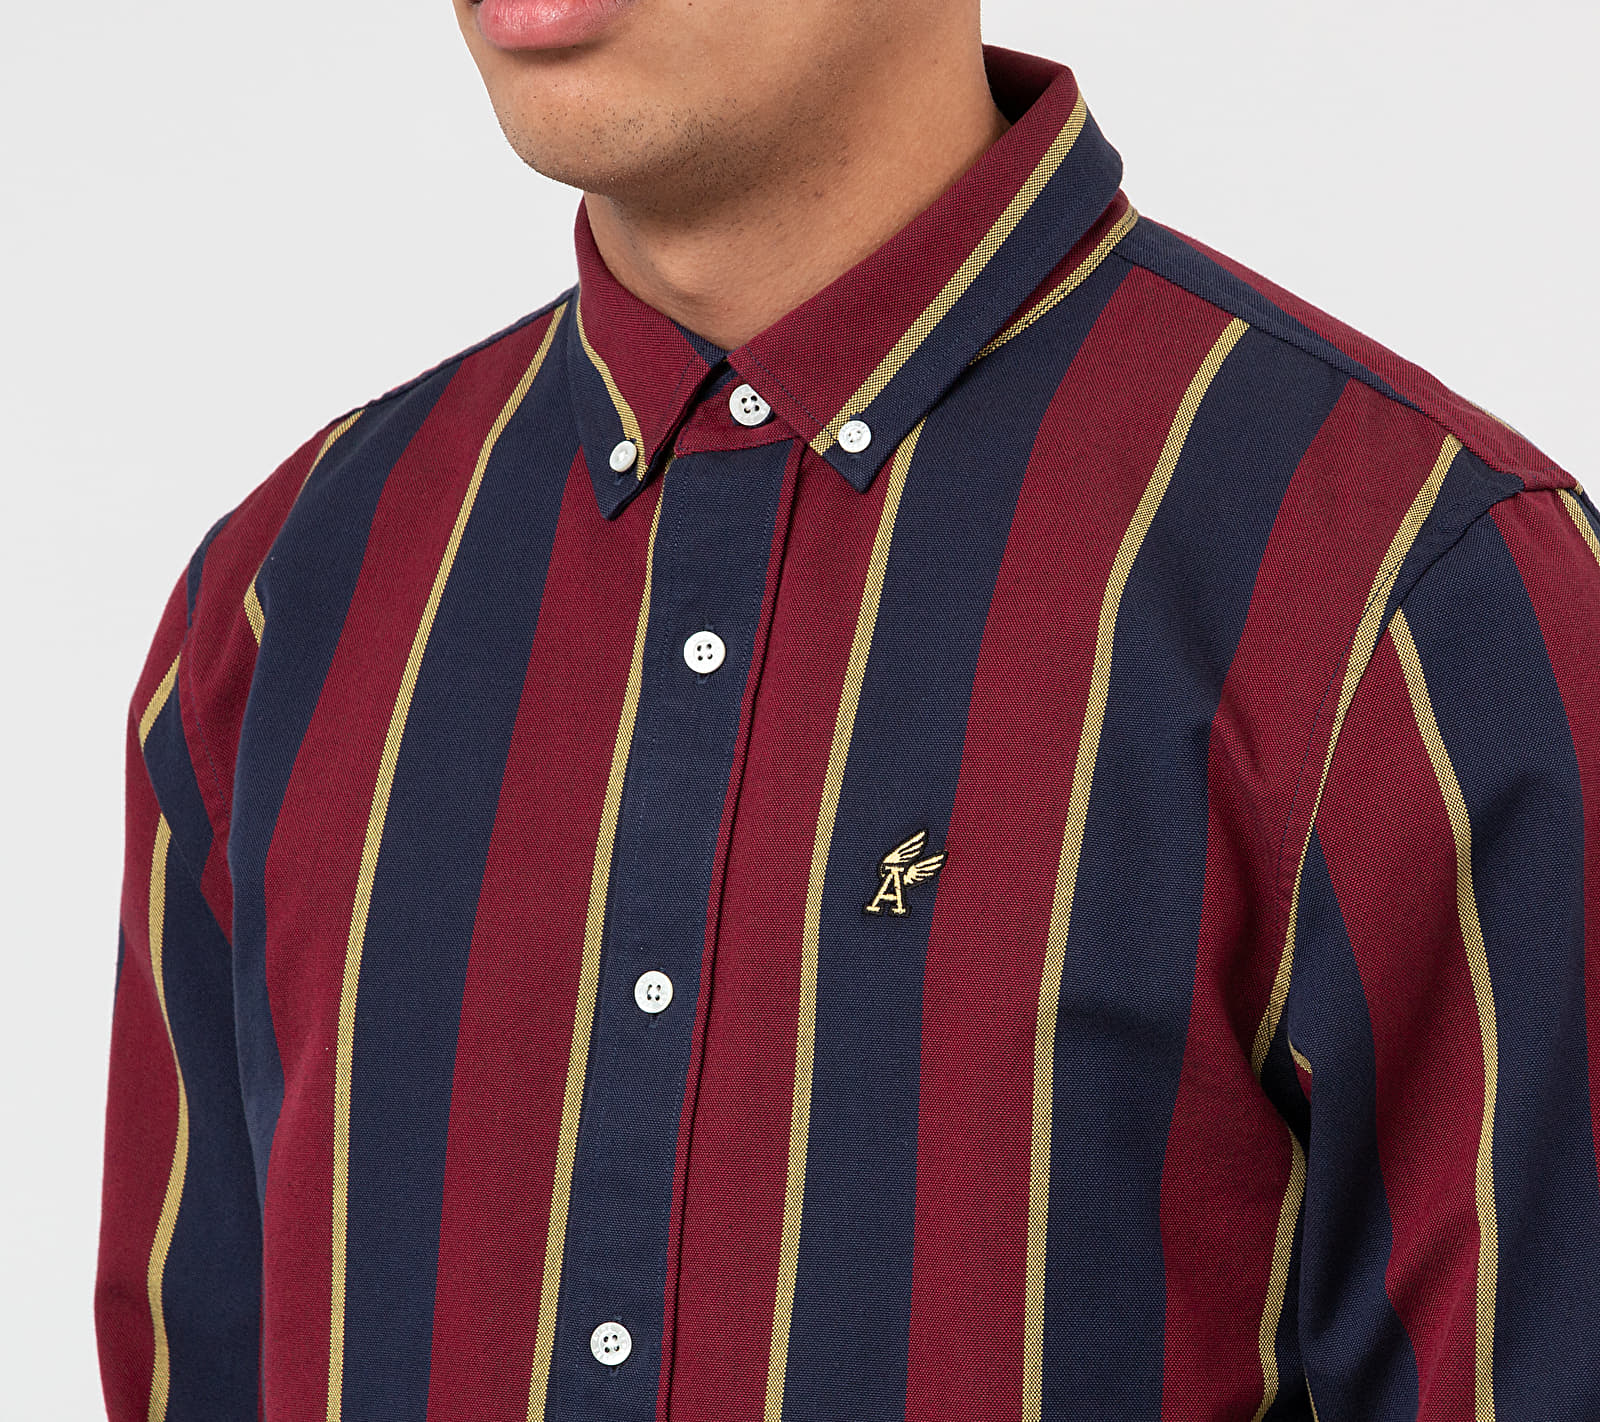 Aimé Leon Dore Striped A-Wing Oxford Shirt Red Wine